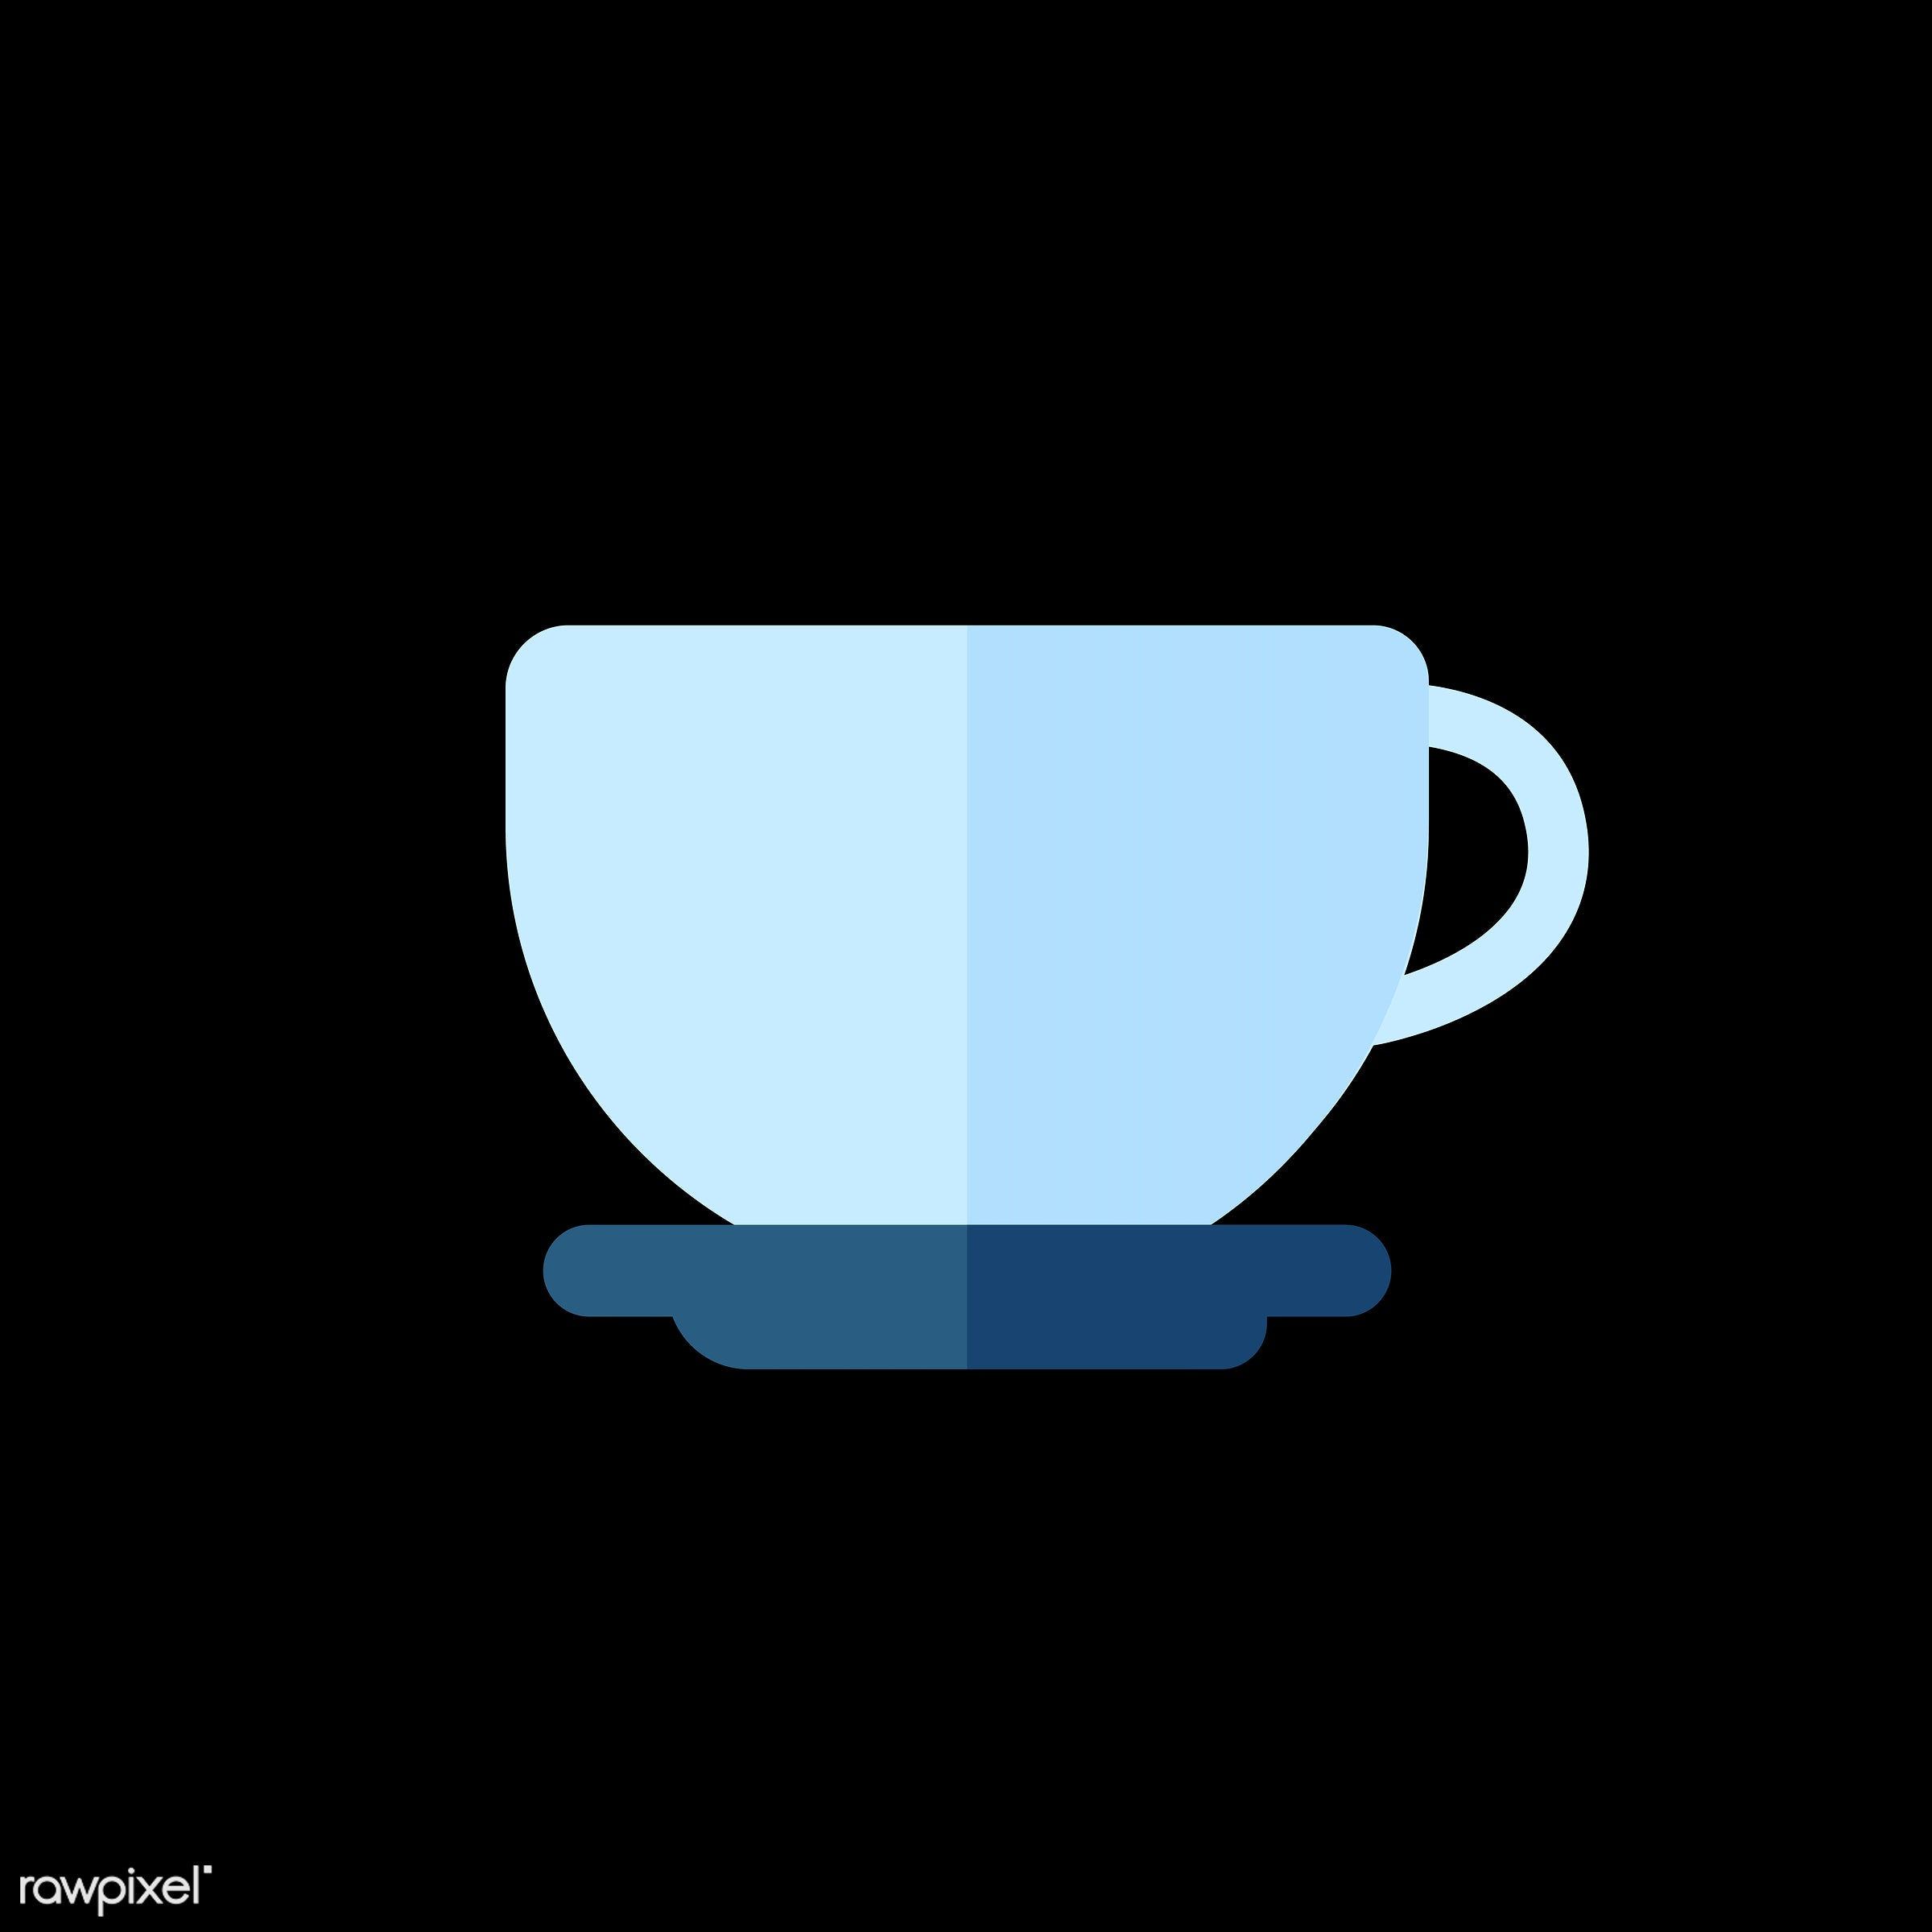 vector, graphic, illustration, icon, symbol, colorful, cute, mug, tea, tea cup, hot drink, drink, beverage, water, blue,...